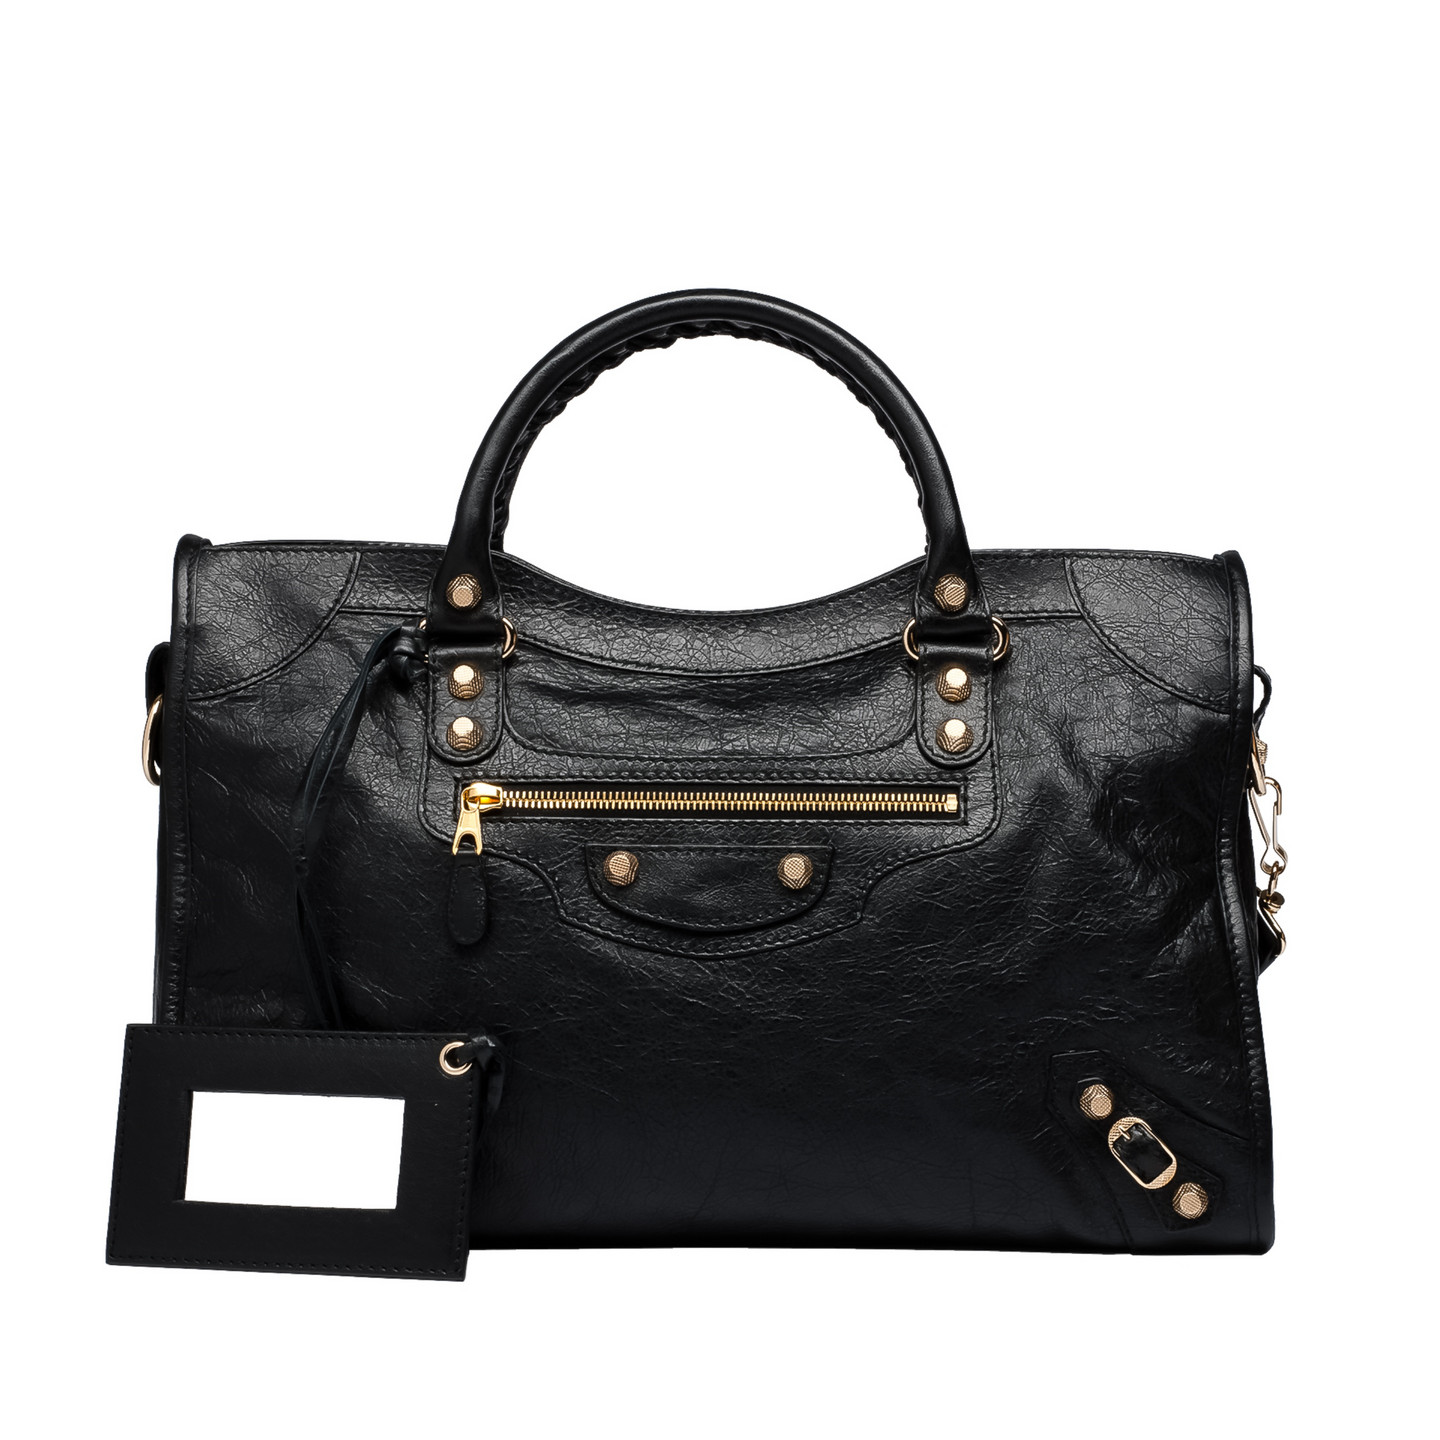 Balenciaga Giant 12 Gold City Black - Women's Top Handle Bag